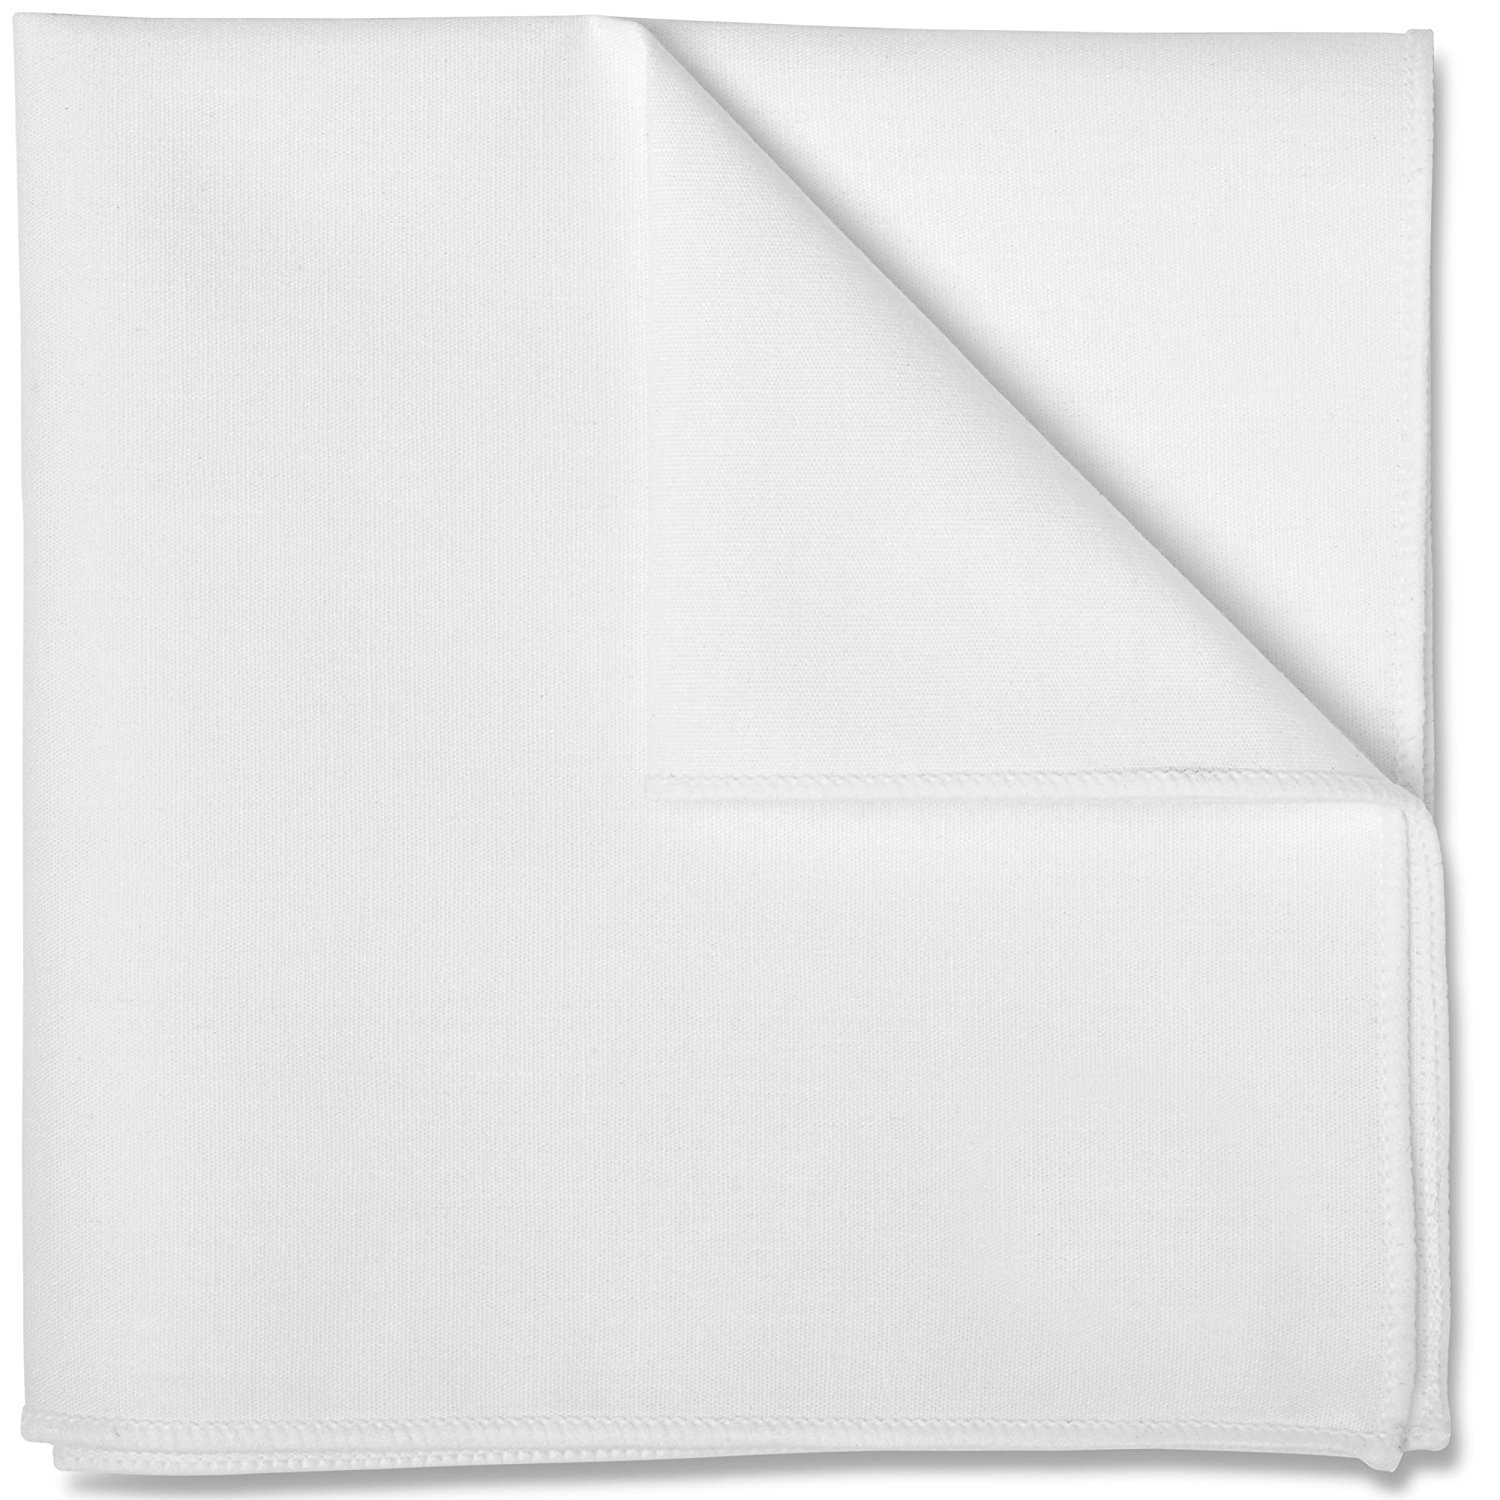 Pocket Square 100% Cotton White Premium Stitching by Puentes Denver (Various Colors) PC-PSQ-WHT